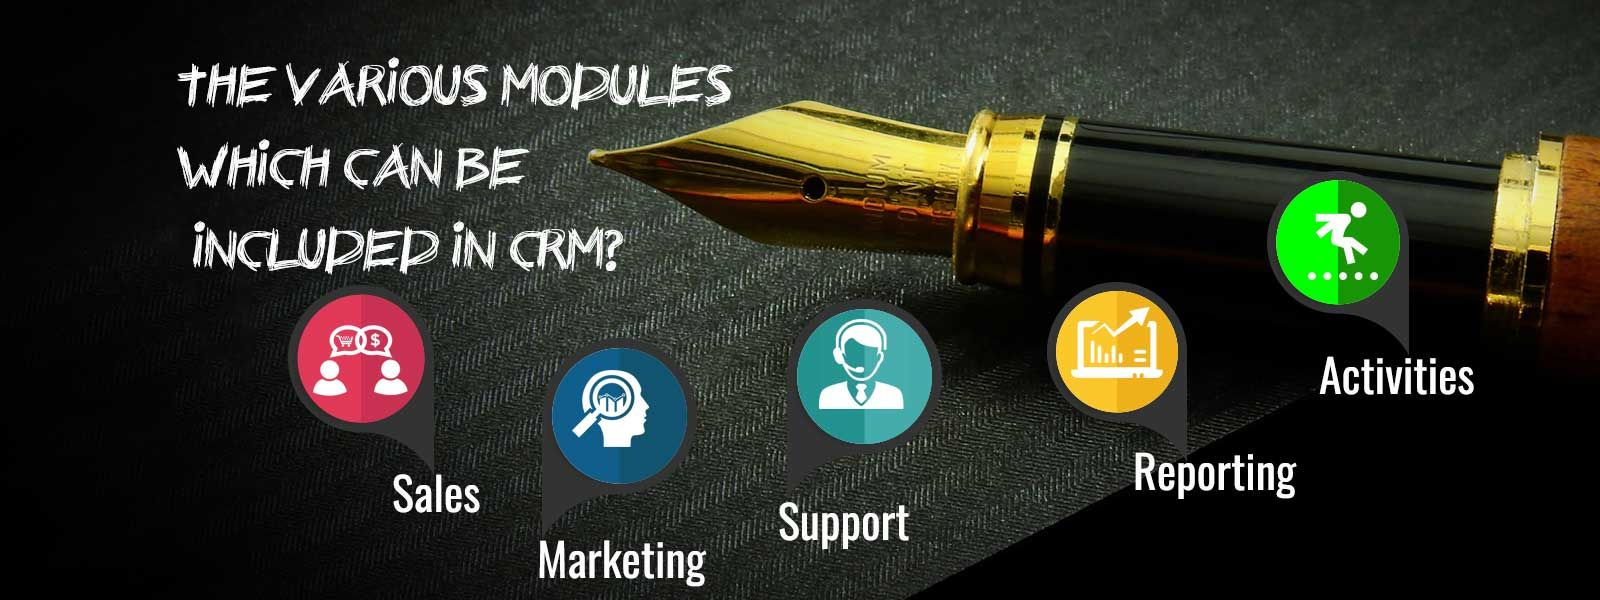 What are the various modules which can be included in CRM